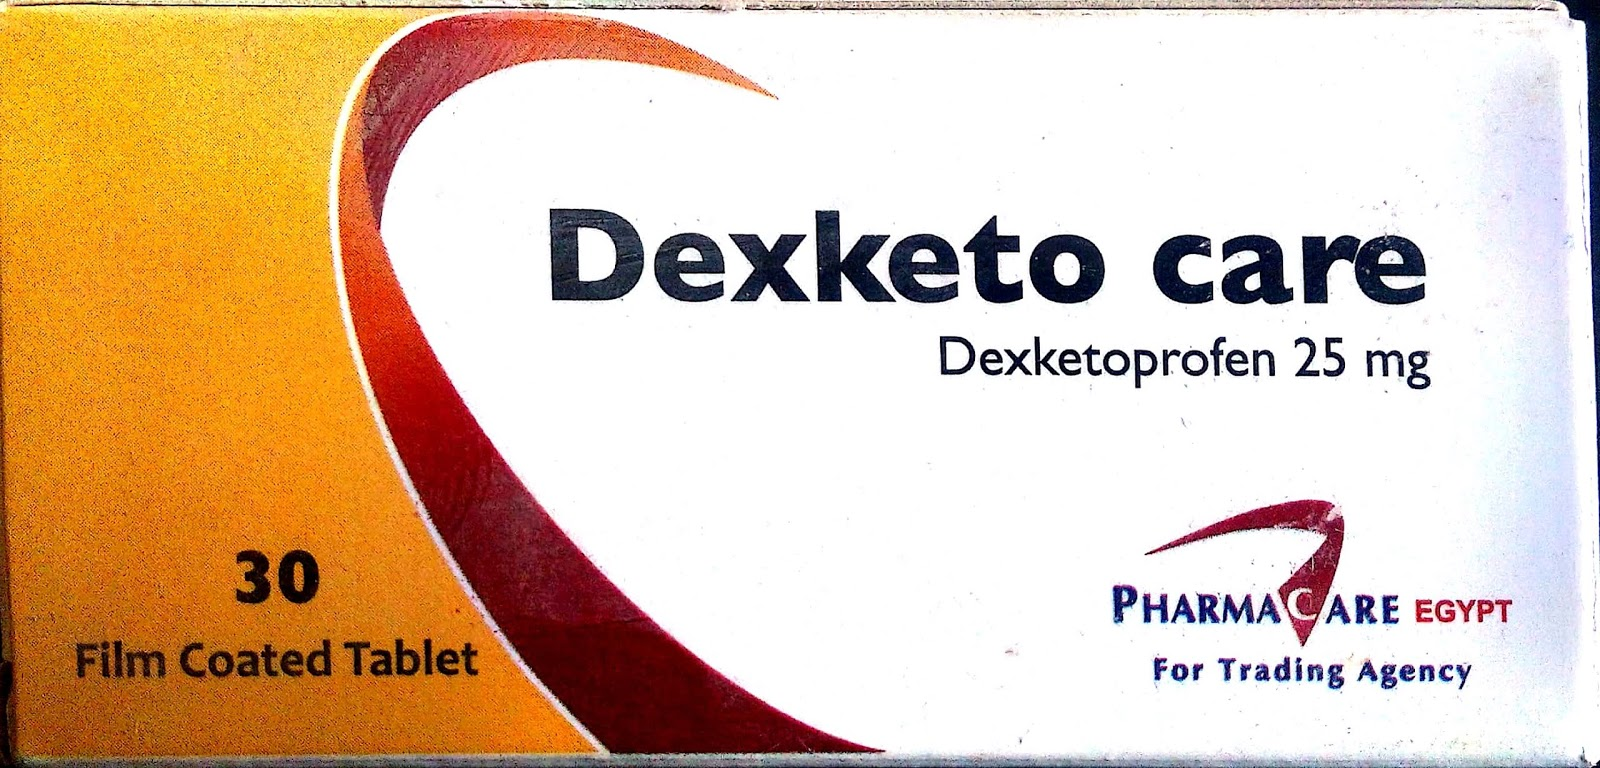 سعر ودواعى أستعمال أقراص ديكسكيتو كير Dexketo Care مسكنة للألام